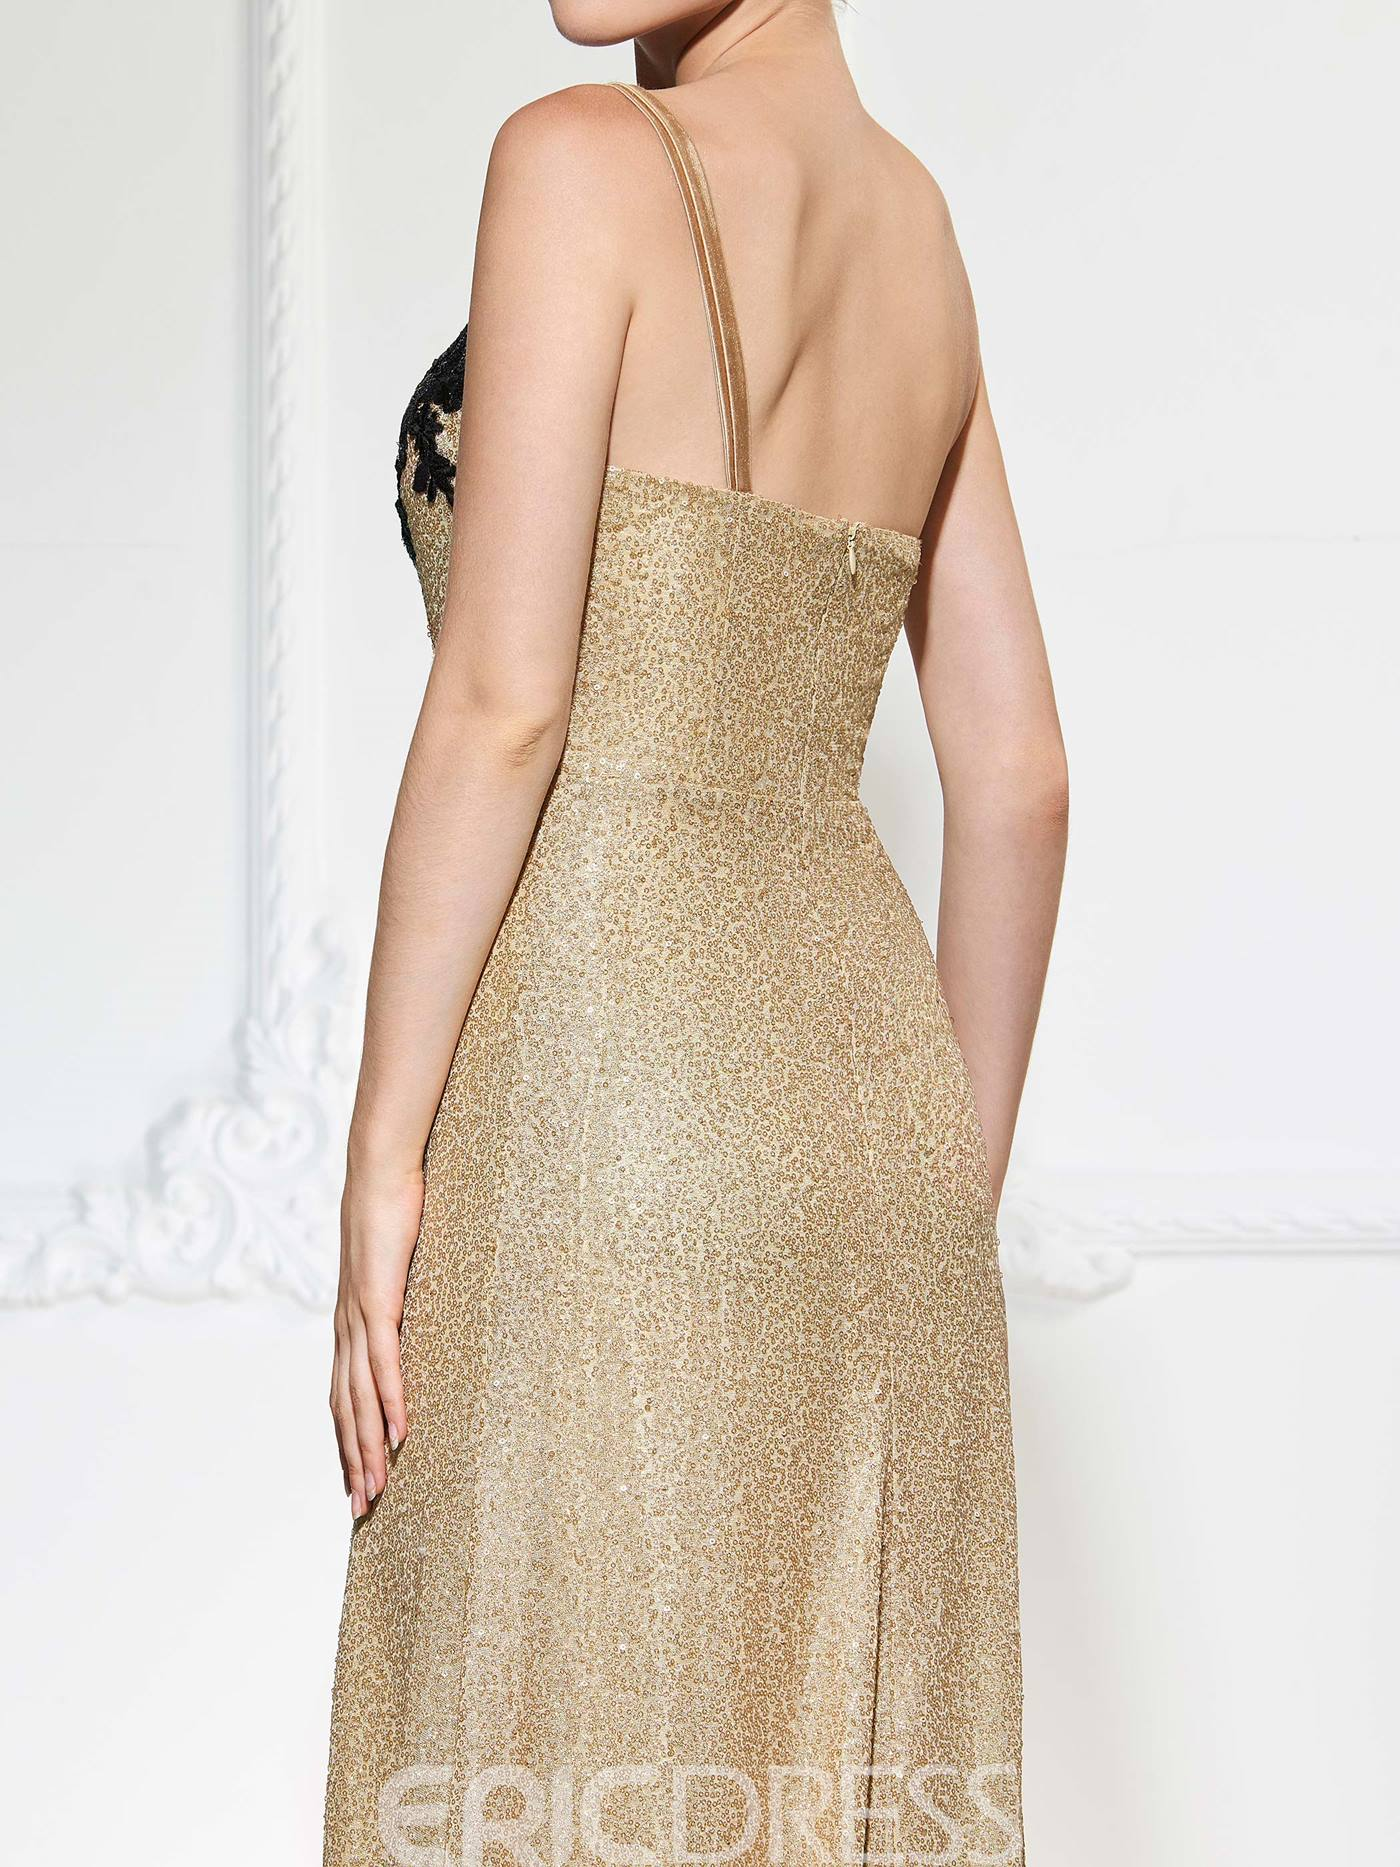 Ericdress Shinny Sequin Spaghetti One Shoulder Applique Slit Side Mermaid Evening Dress